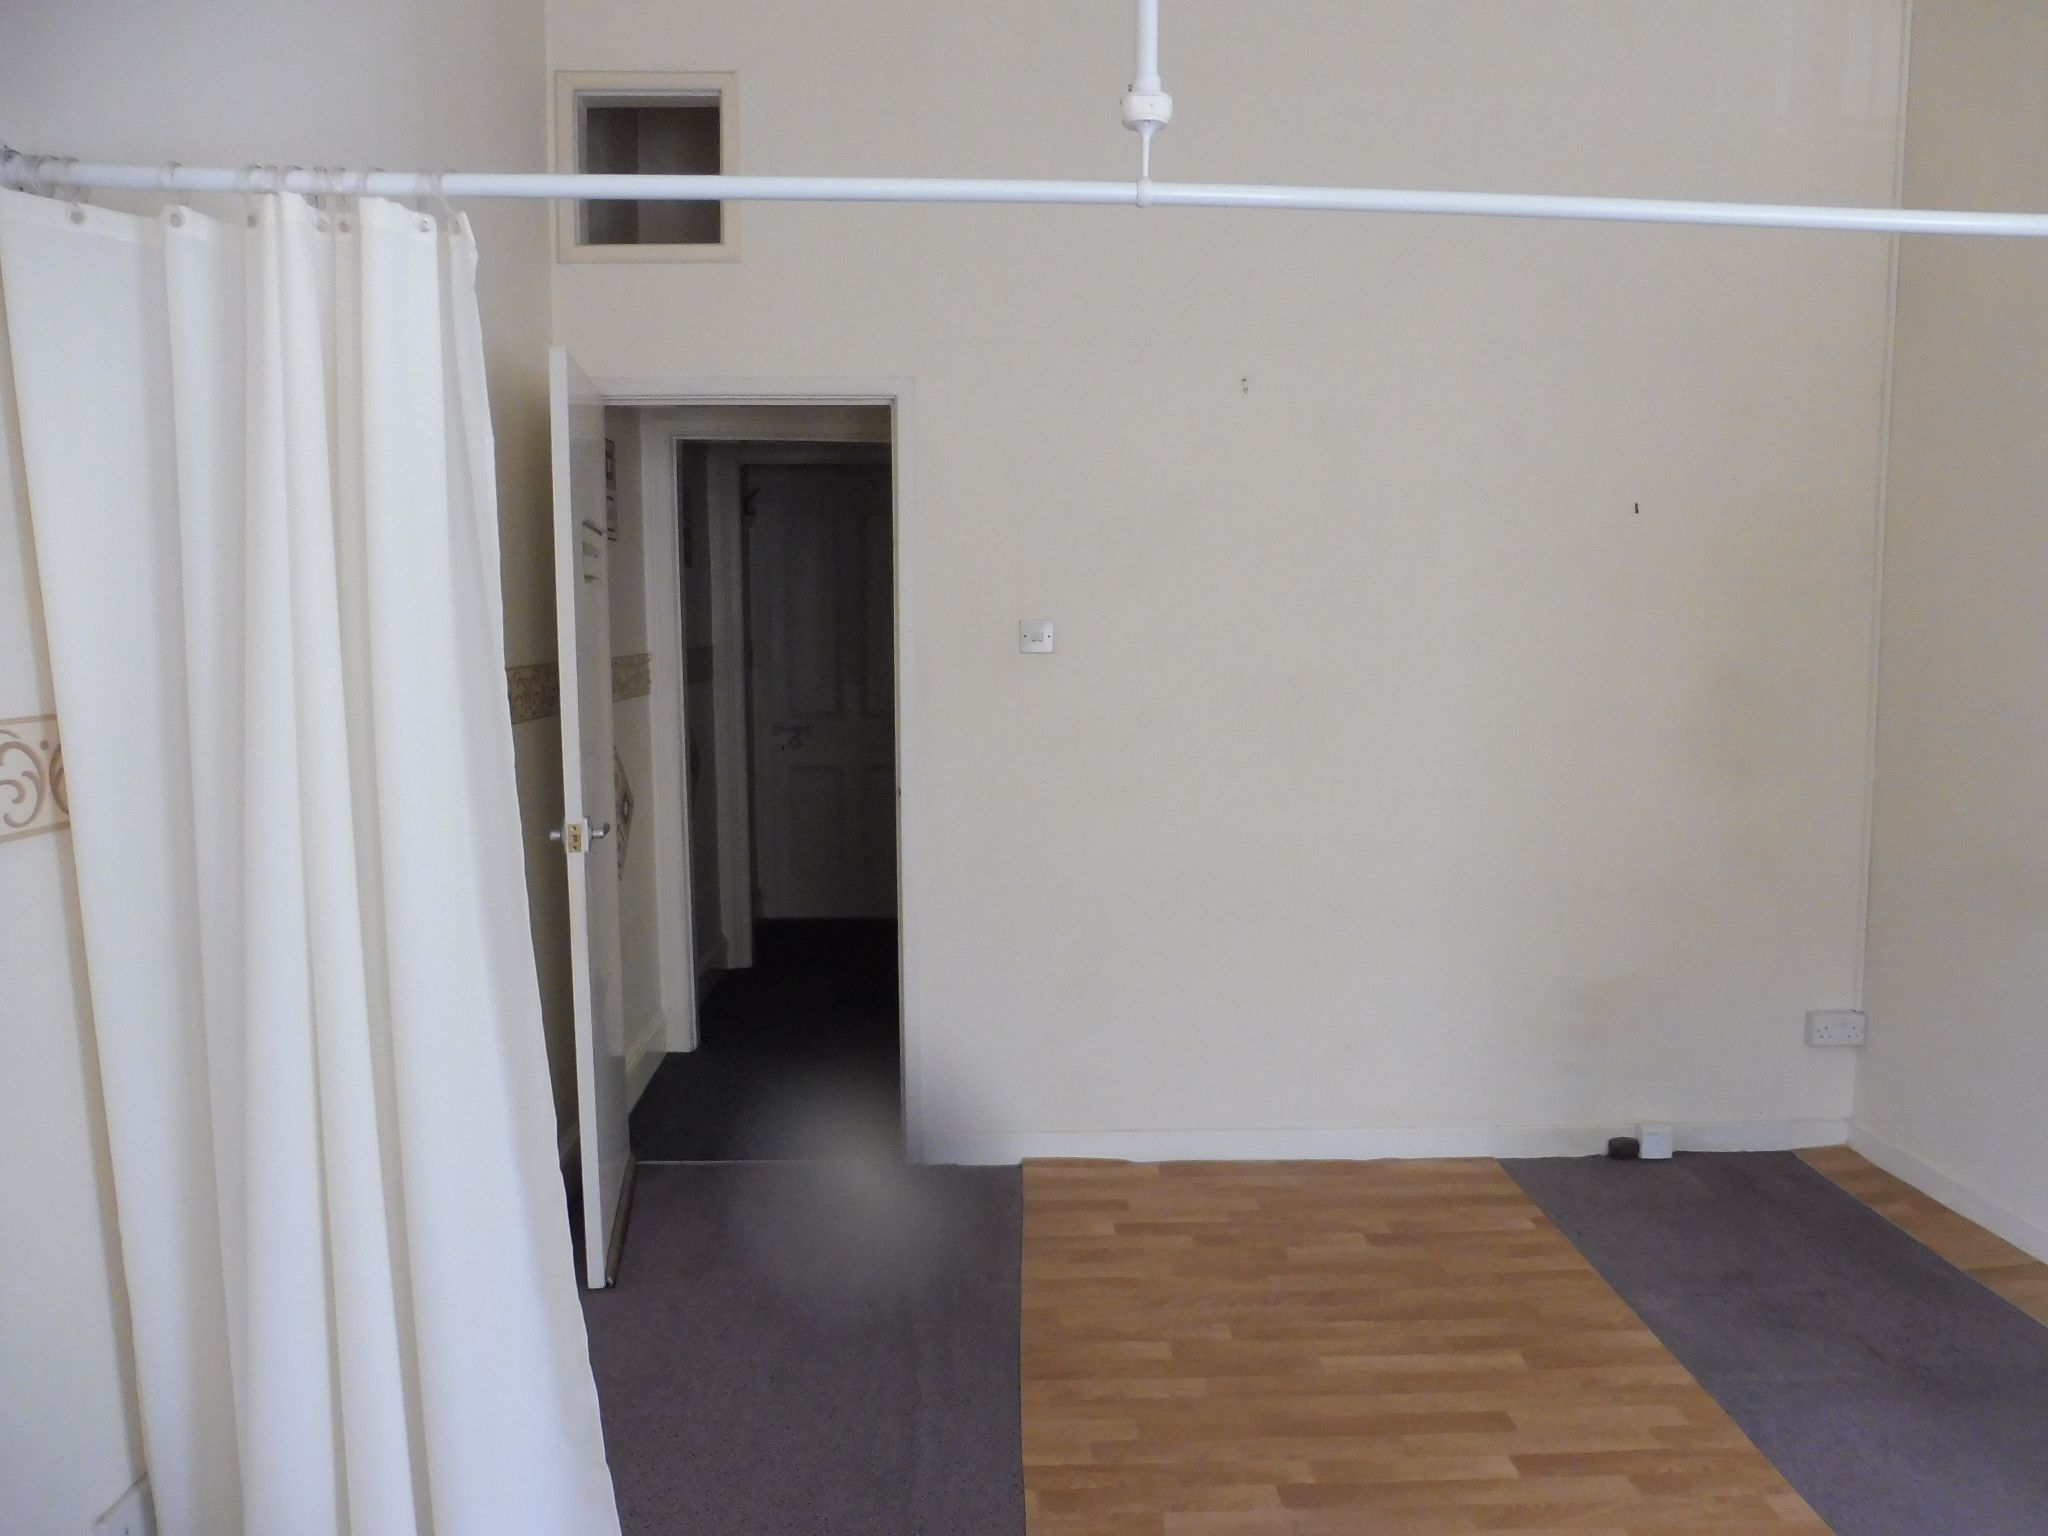 Commercial Property To Let in Brighouse - Photograph 4.